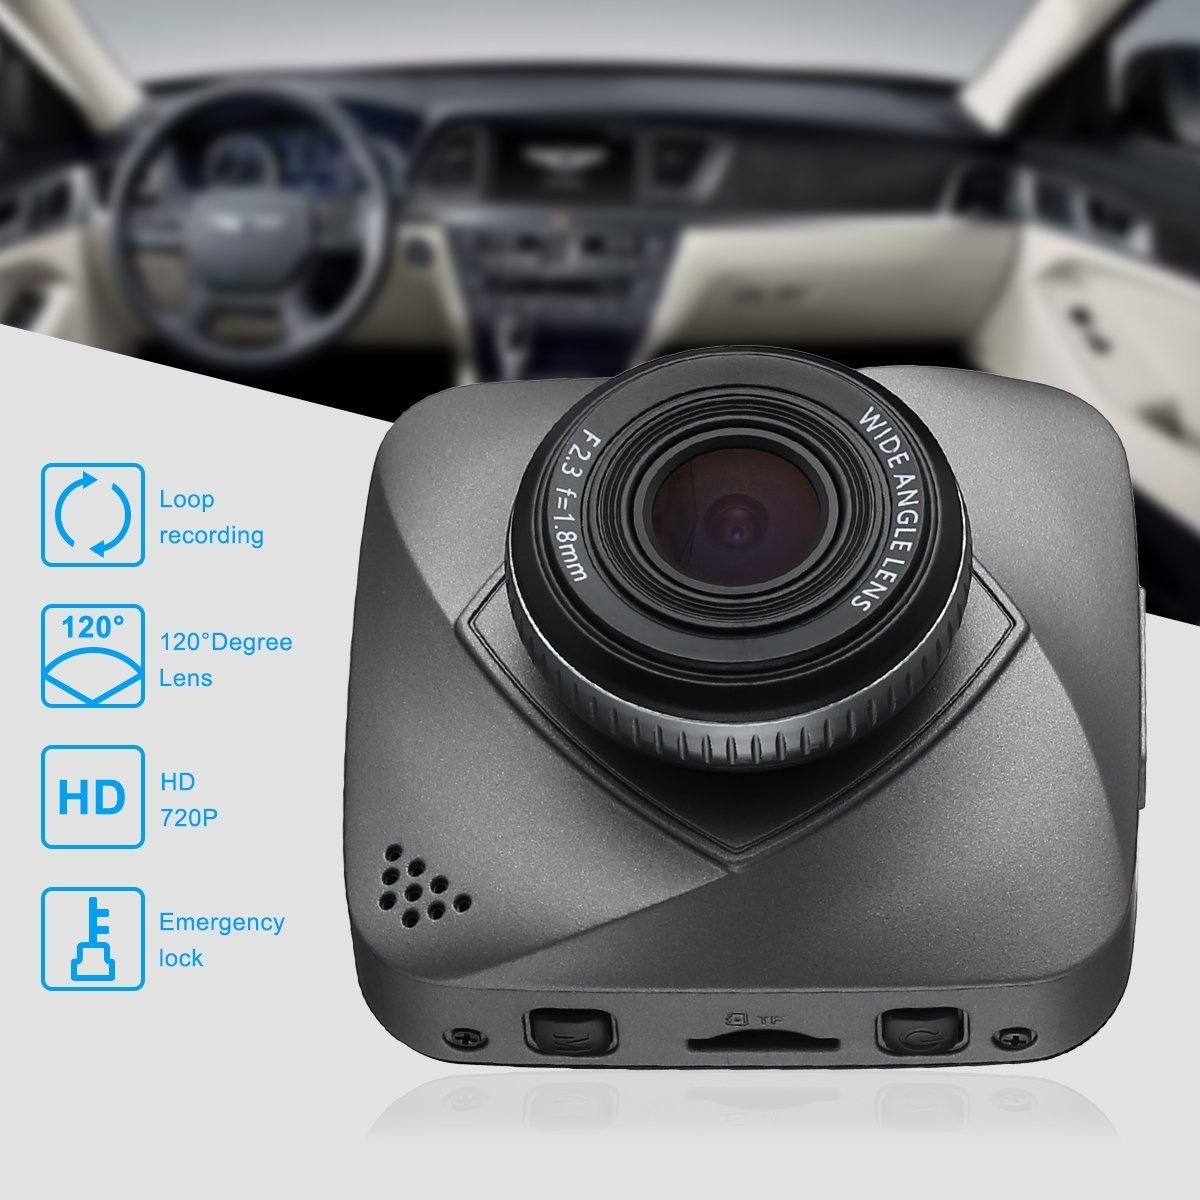 isYoung Dash Cam Full HD 720P Car Vedio Recorder Car Dashboard Camera Night Vision with Loop Recording, 120 Degree